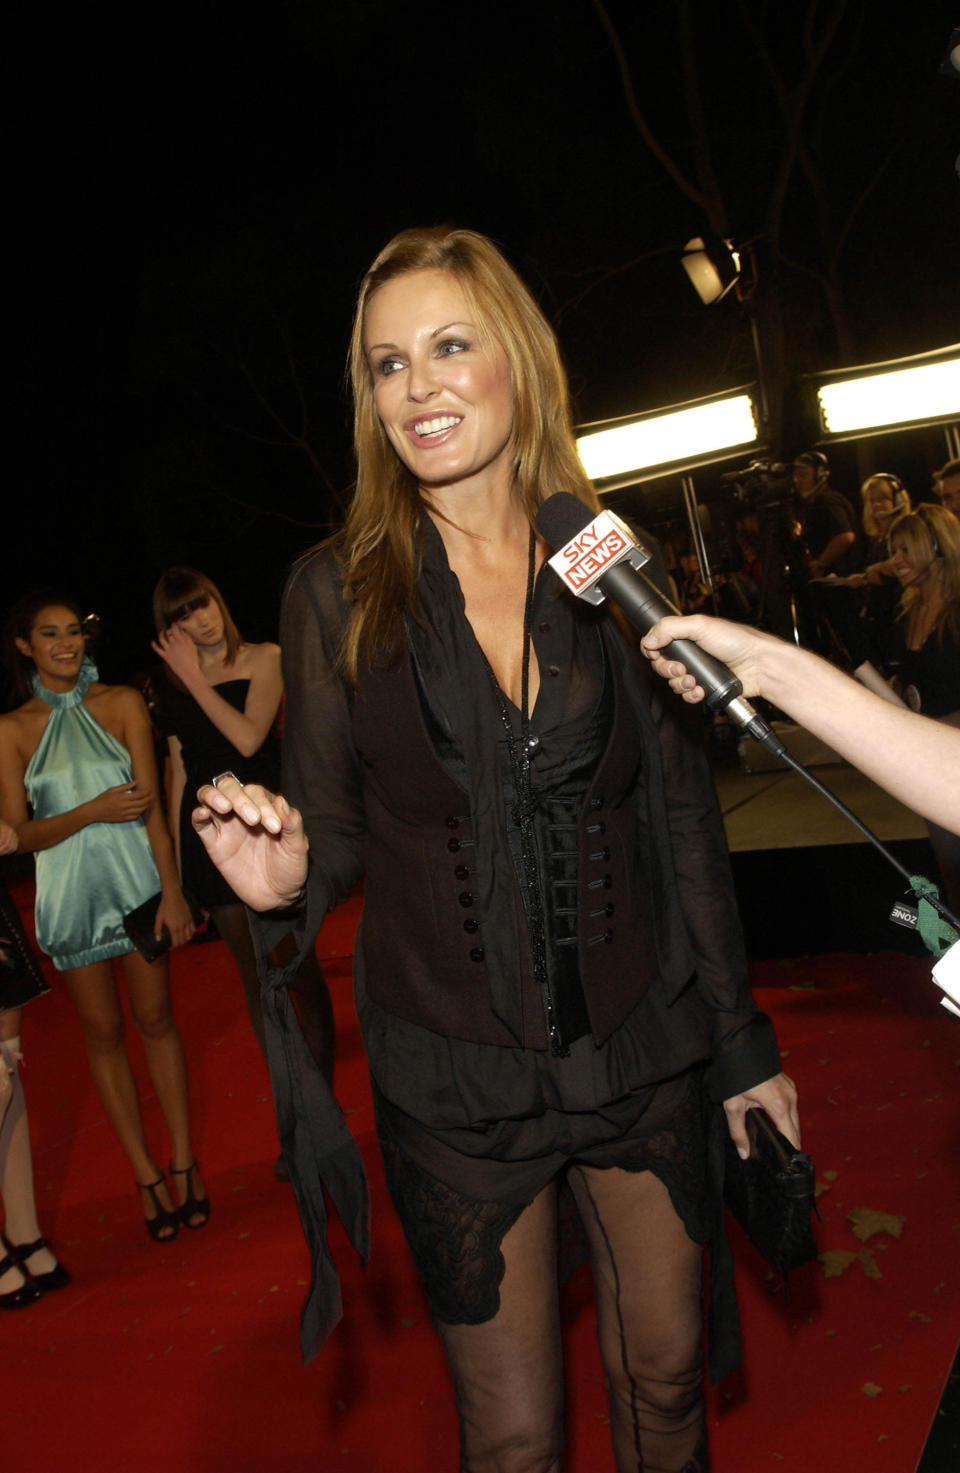 In this April 26, 2008 photo, Charlotte Dawson arrives on the red carpet for the MTV Australia awards in Sydney. Australian TV star and former model Dawson was found dead at age 47 in her Sydney apartment on Saturday morning, Feb. 22, 2014, following a history of depression. Police said there were no suspicious circumstances. (AP Photo/New Zealand Herald, Norrie Montgomery) NEW ZEALAND OUT, AUSTRALIA OUT, FAIRFAX OUT